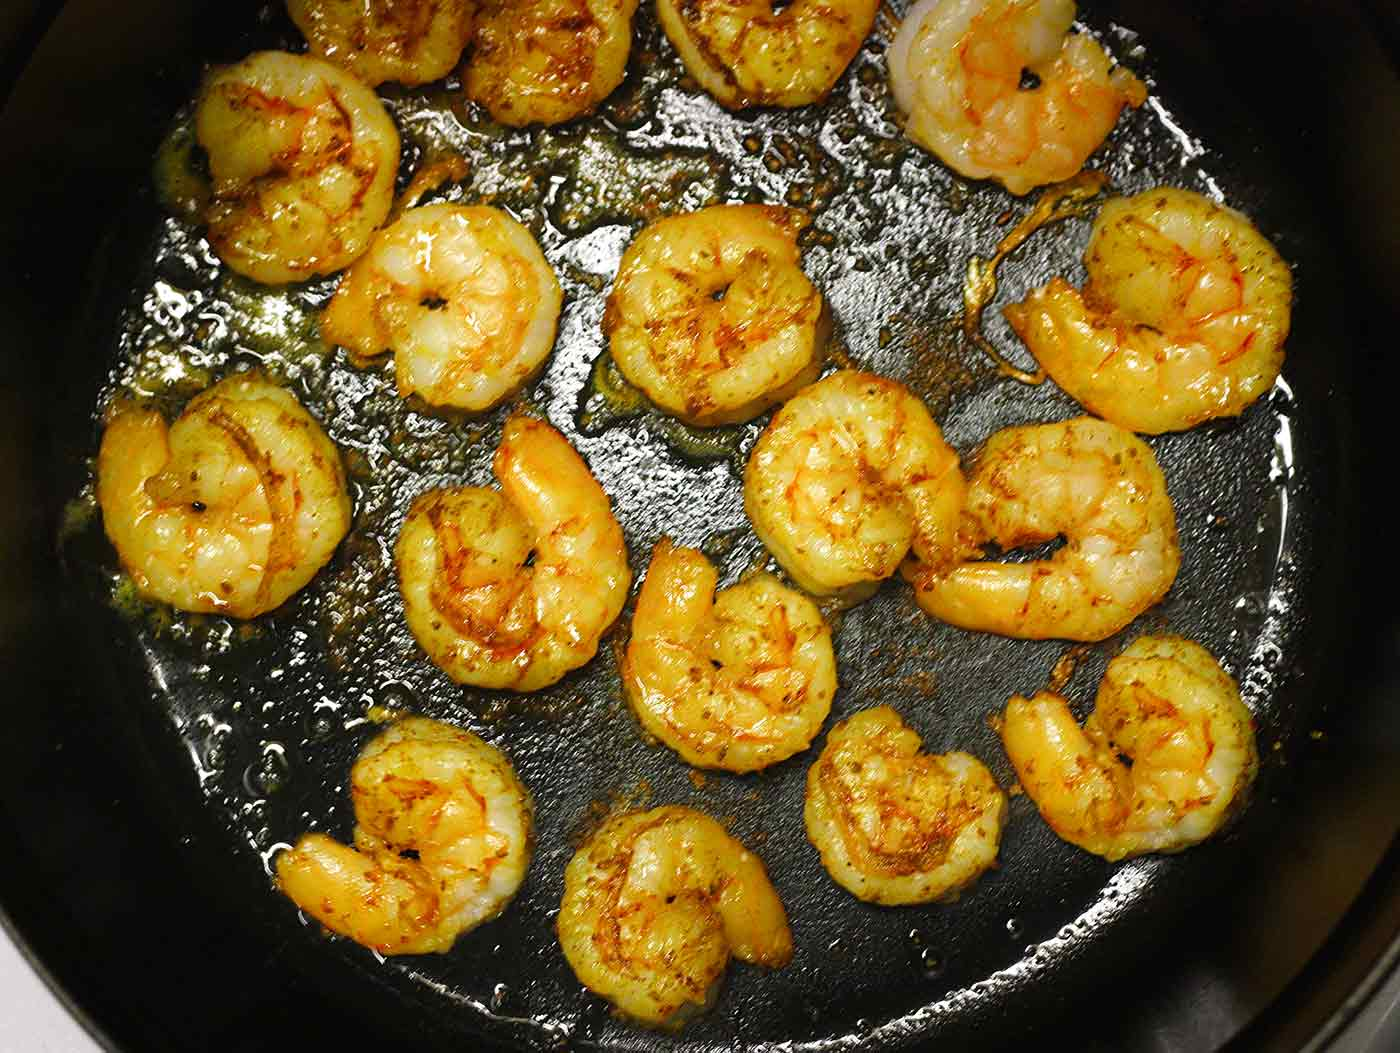 Curried shrimp cooking in a cast iron skillet